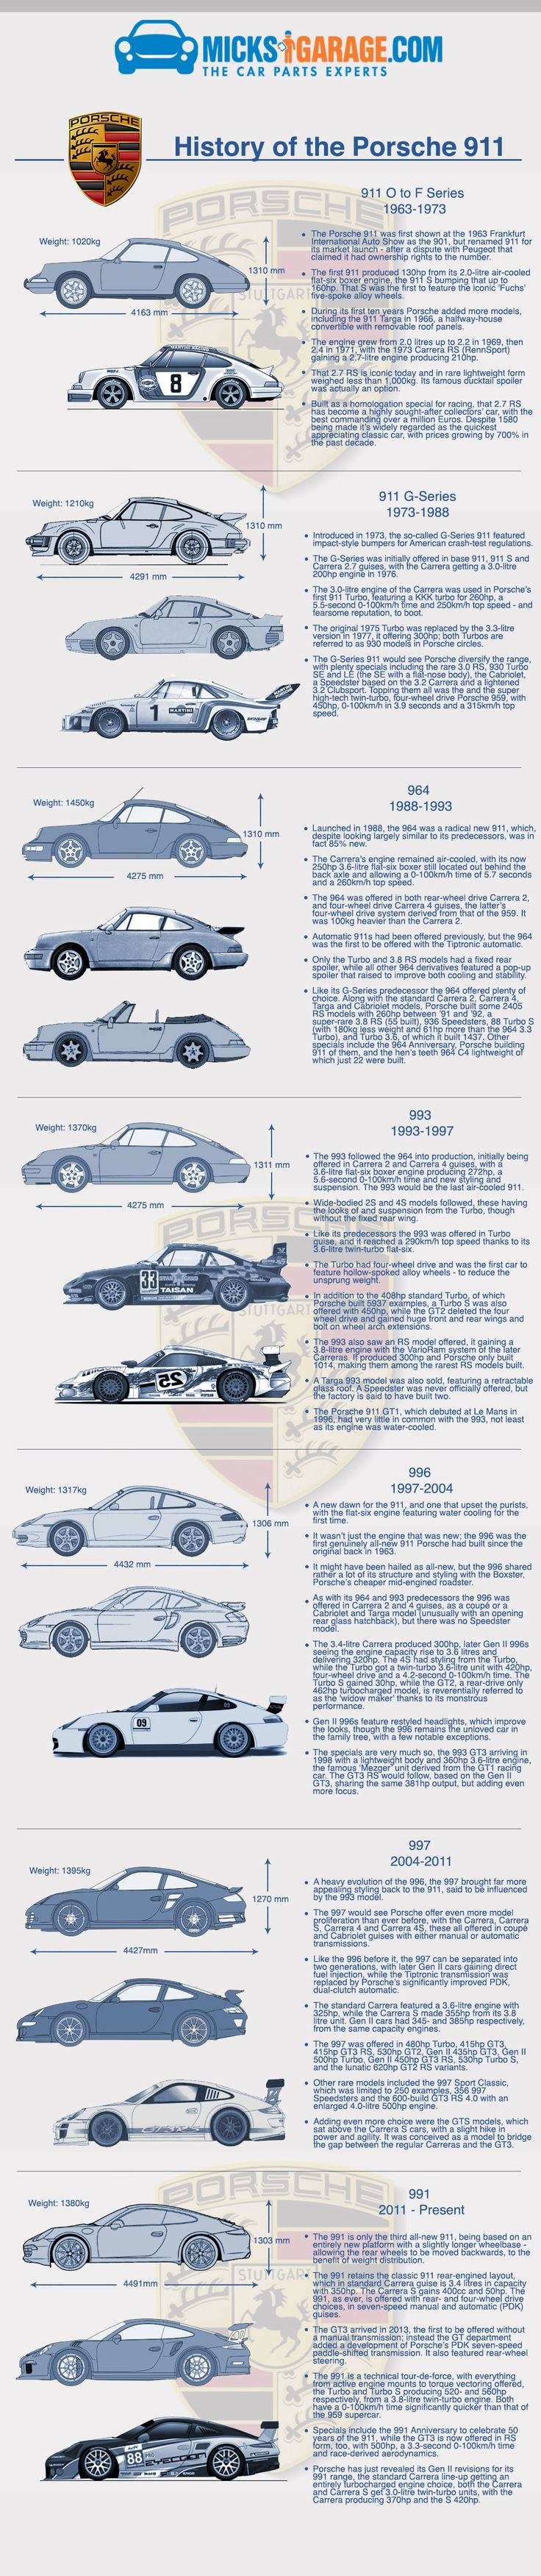 Infographic: History of The Porsche 911 | MicksGarage.com Blog